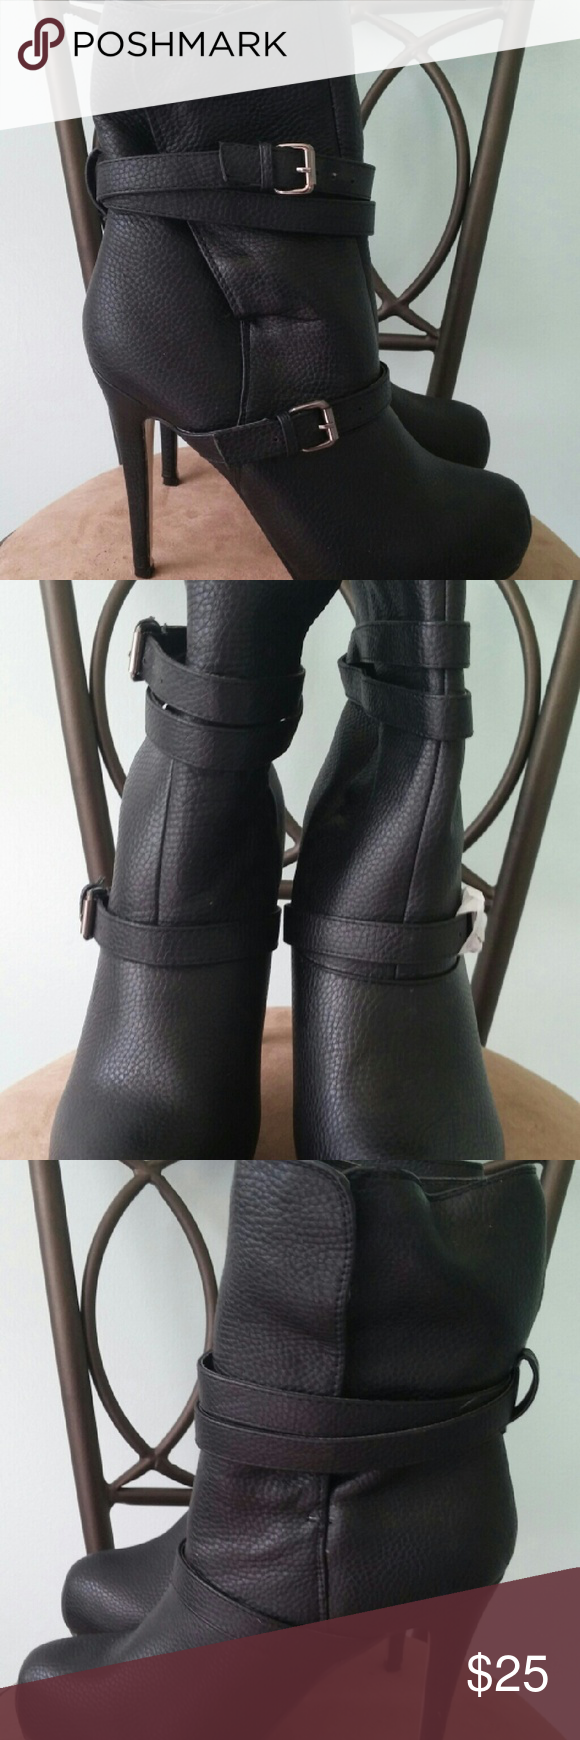 """JustFab """"Addie"""" Black Ankle Booties These Boots are SEXY!!!  Of course, they were too """"high"""" for me so, they have NEVER been worn!!!  They feature decorative straps with silver buckles on one side and they are pull on.  Size 8.5. JustFab Shoes Ankle Boots & Booties"""